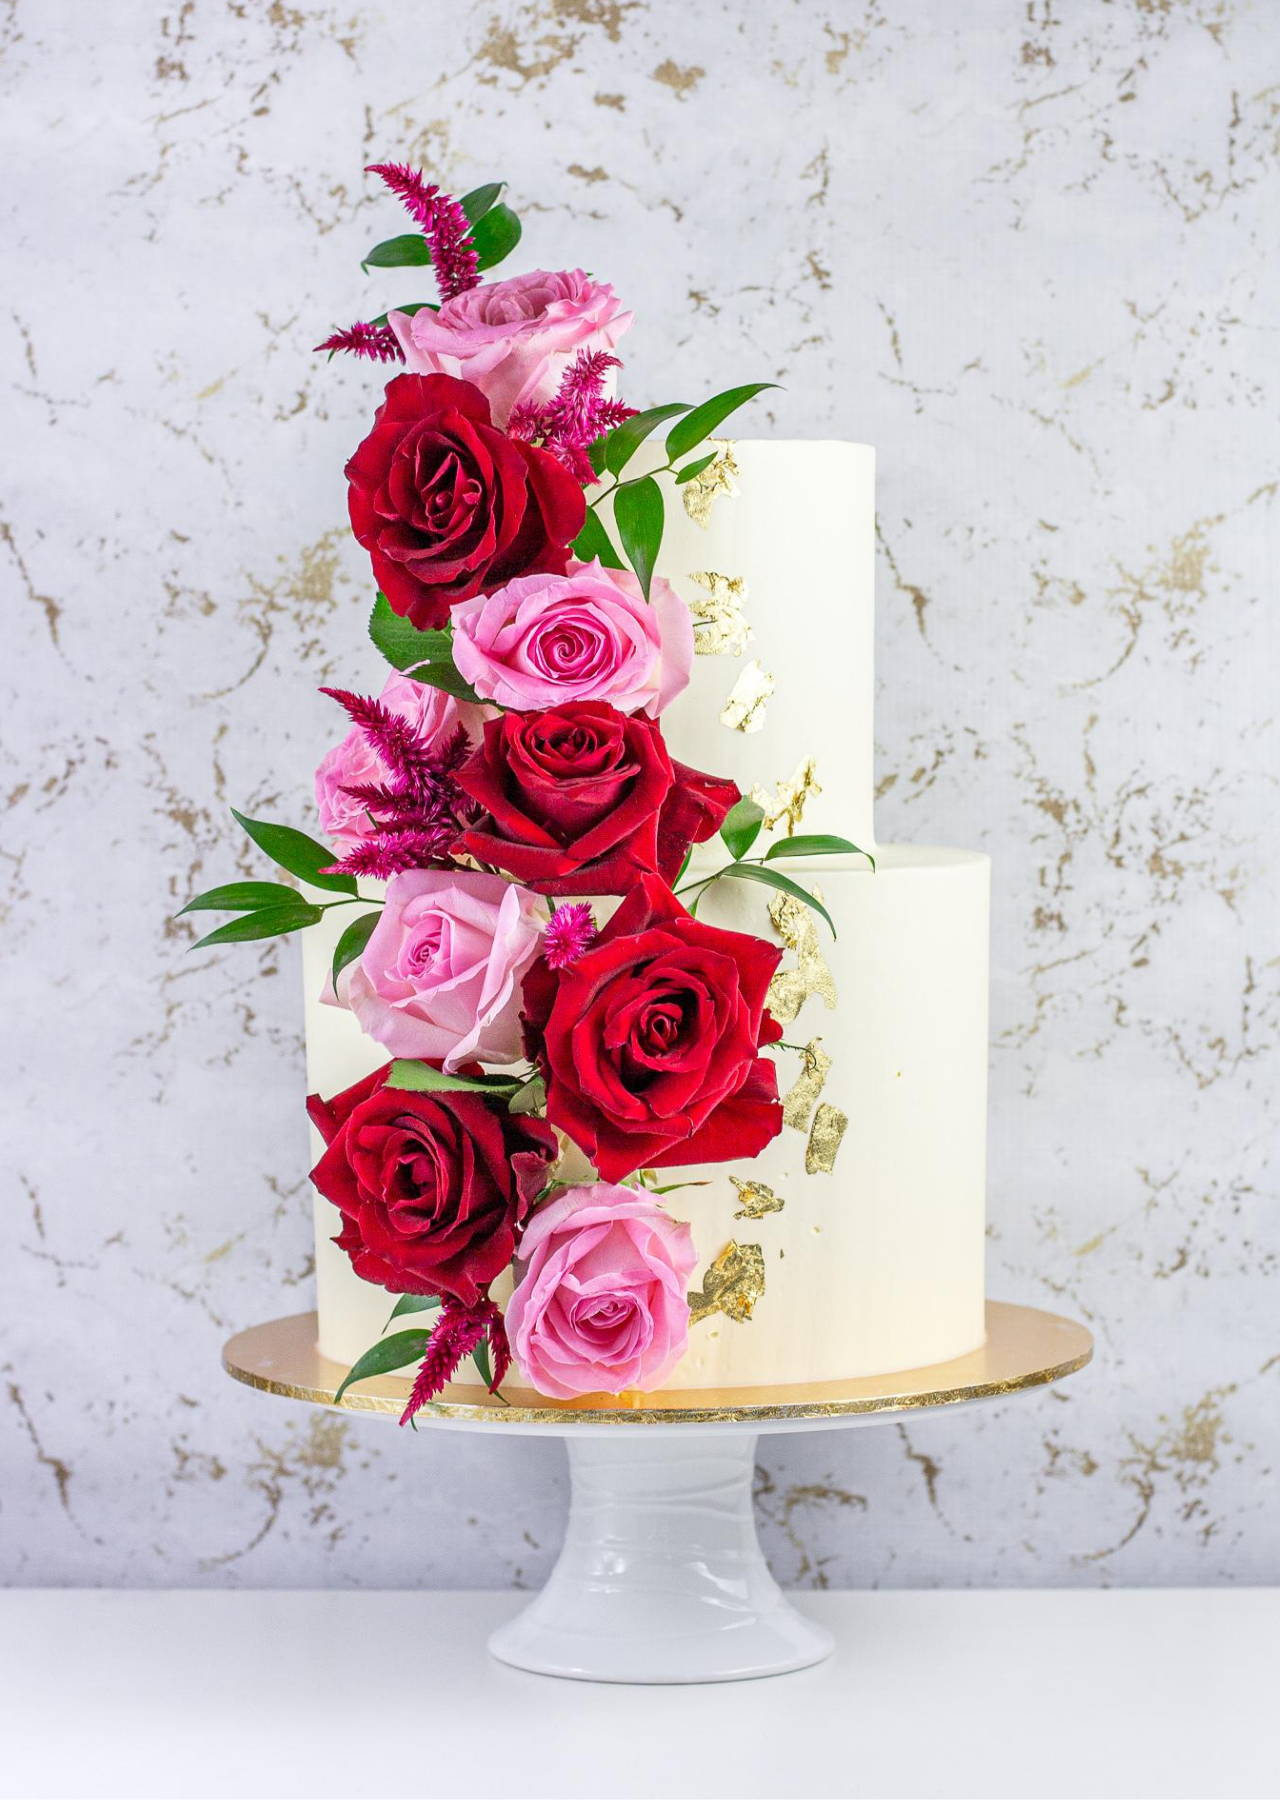 2 Tier Wedding Cake with Roses and Gold Foil Detailing